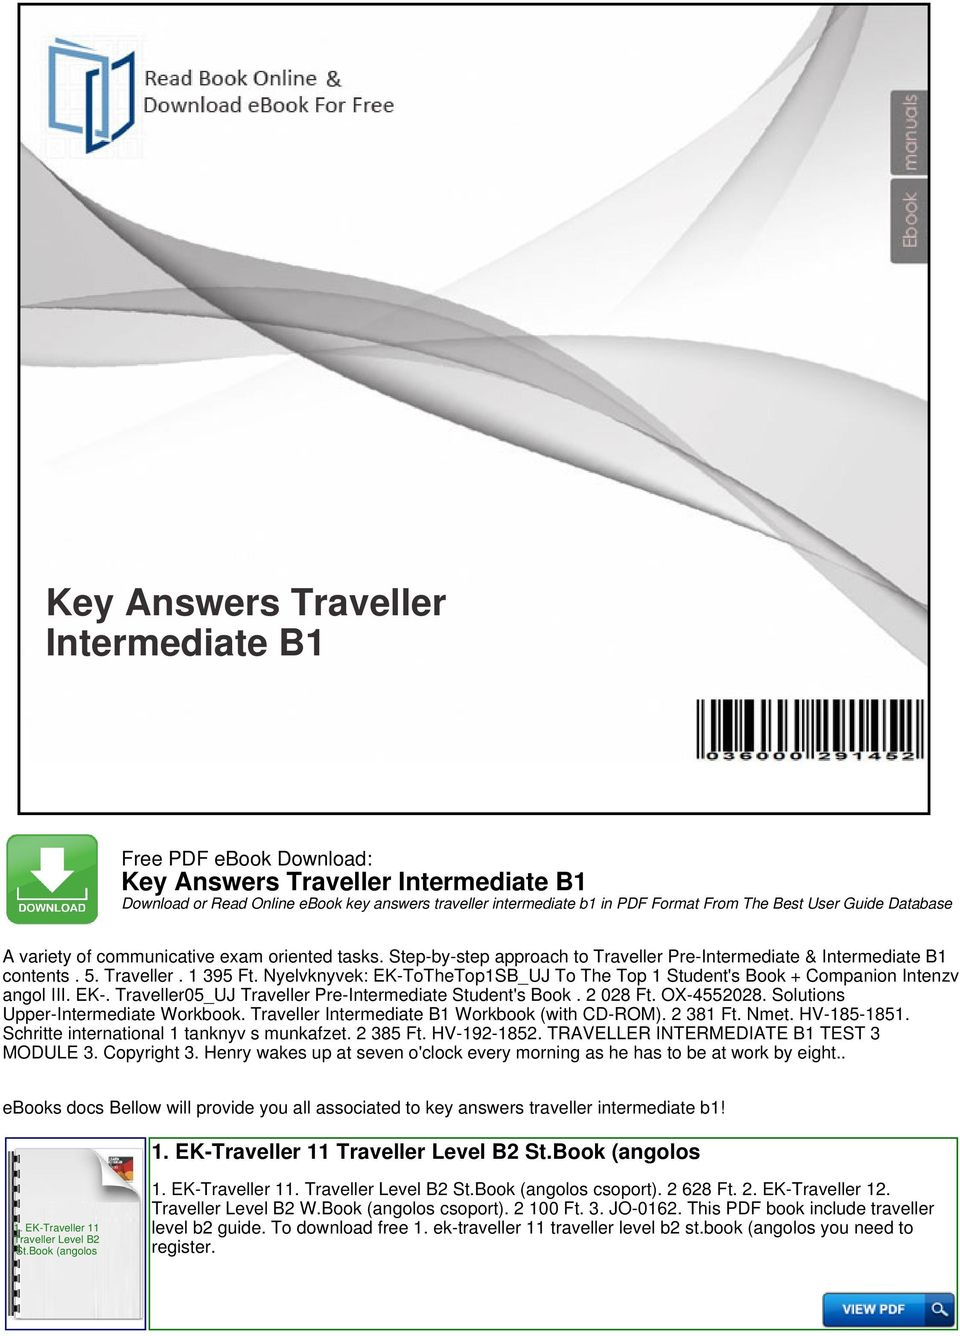 key answers traveller intermediate b1 pdf